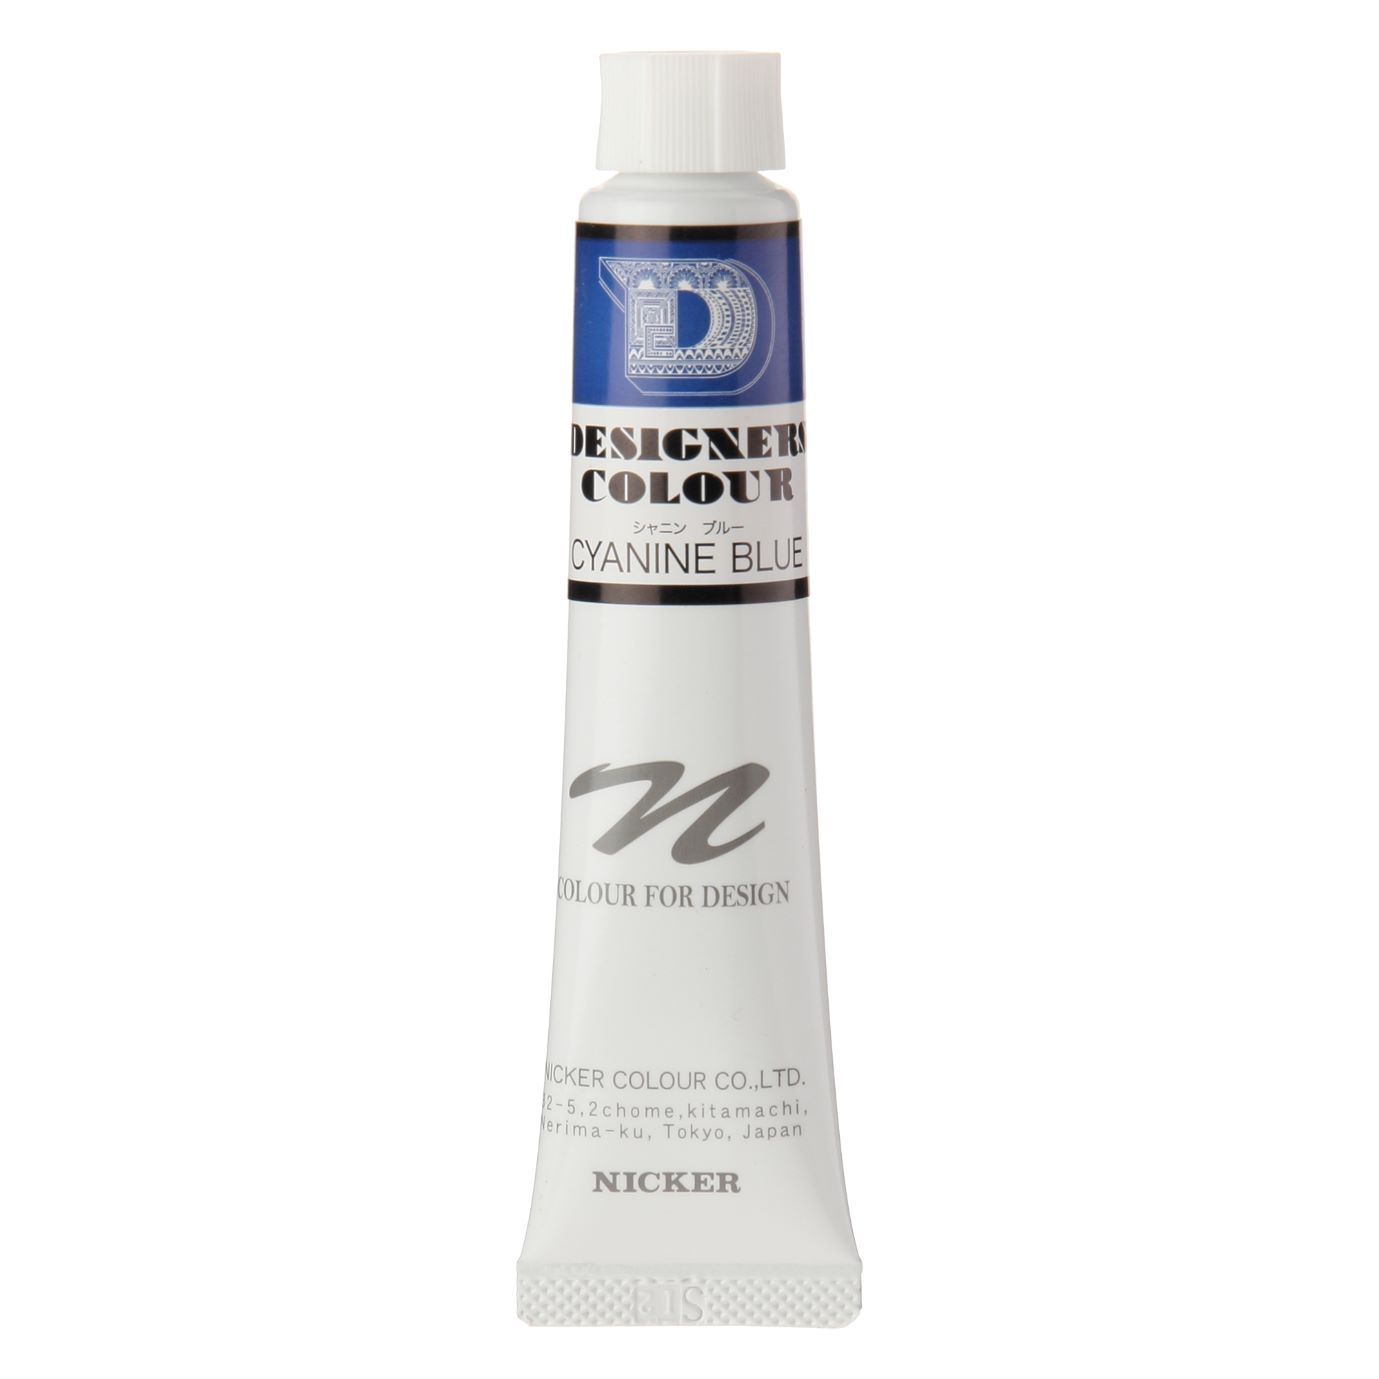 DESIGNERS COLOUR 20ml 539 CYANINE BLUE